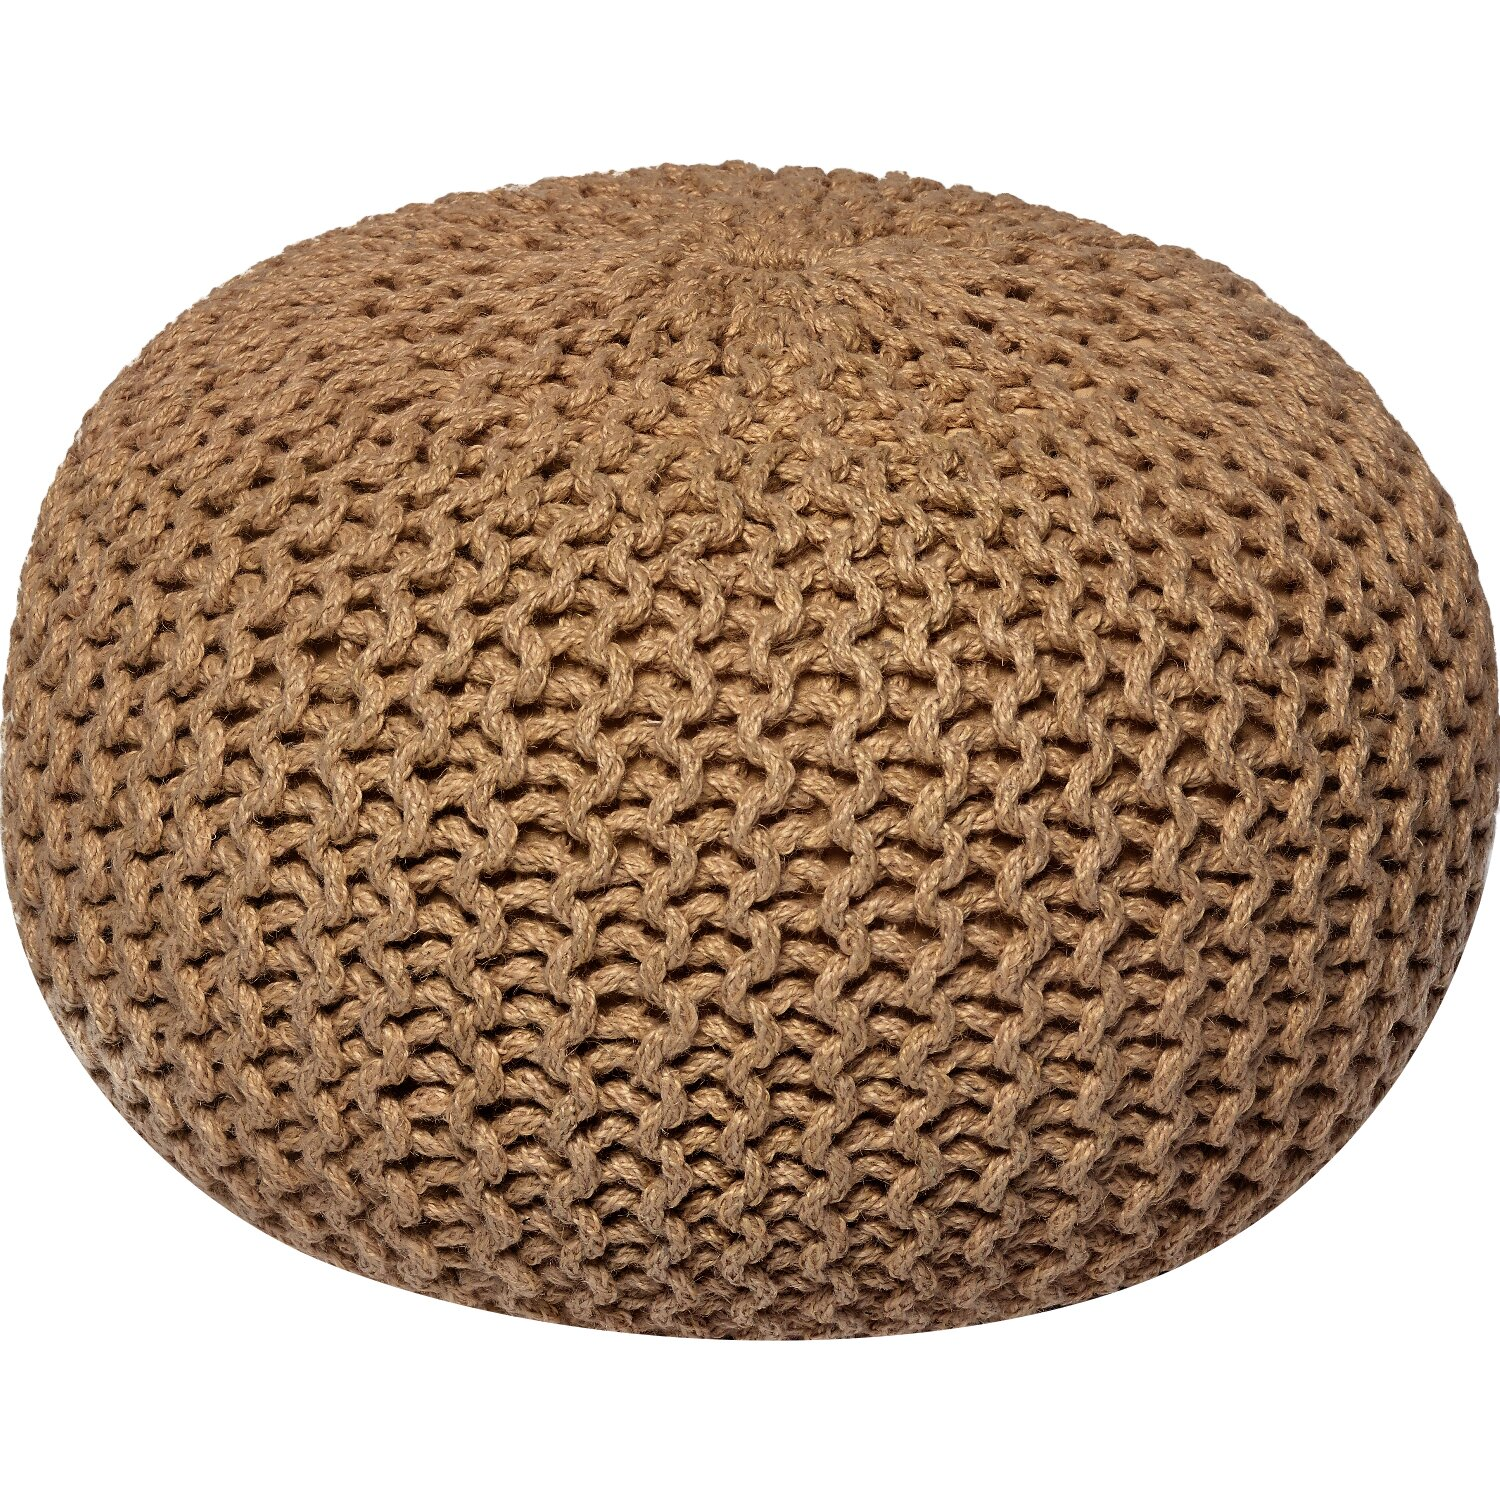 Wildon Home 174 Corded Jute Round Pouf Ottoman Amp Reviews